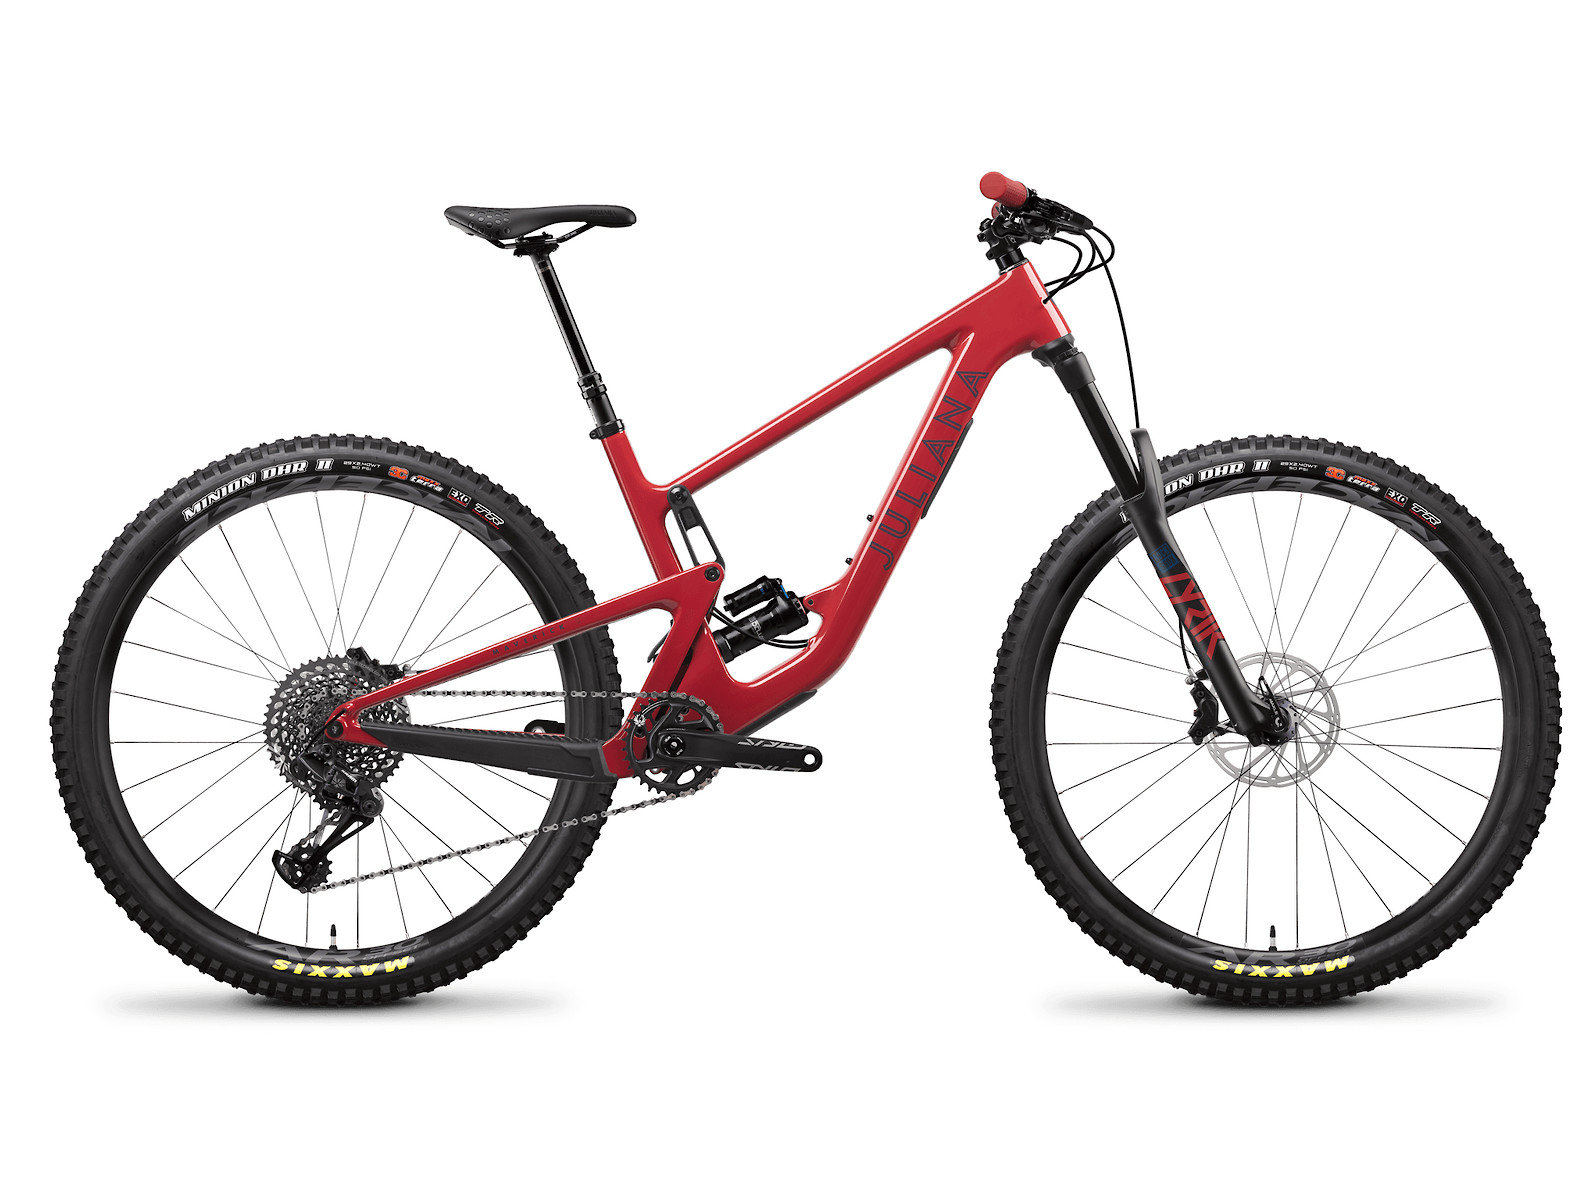 2020 Juliana Maverick S Carbon C